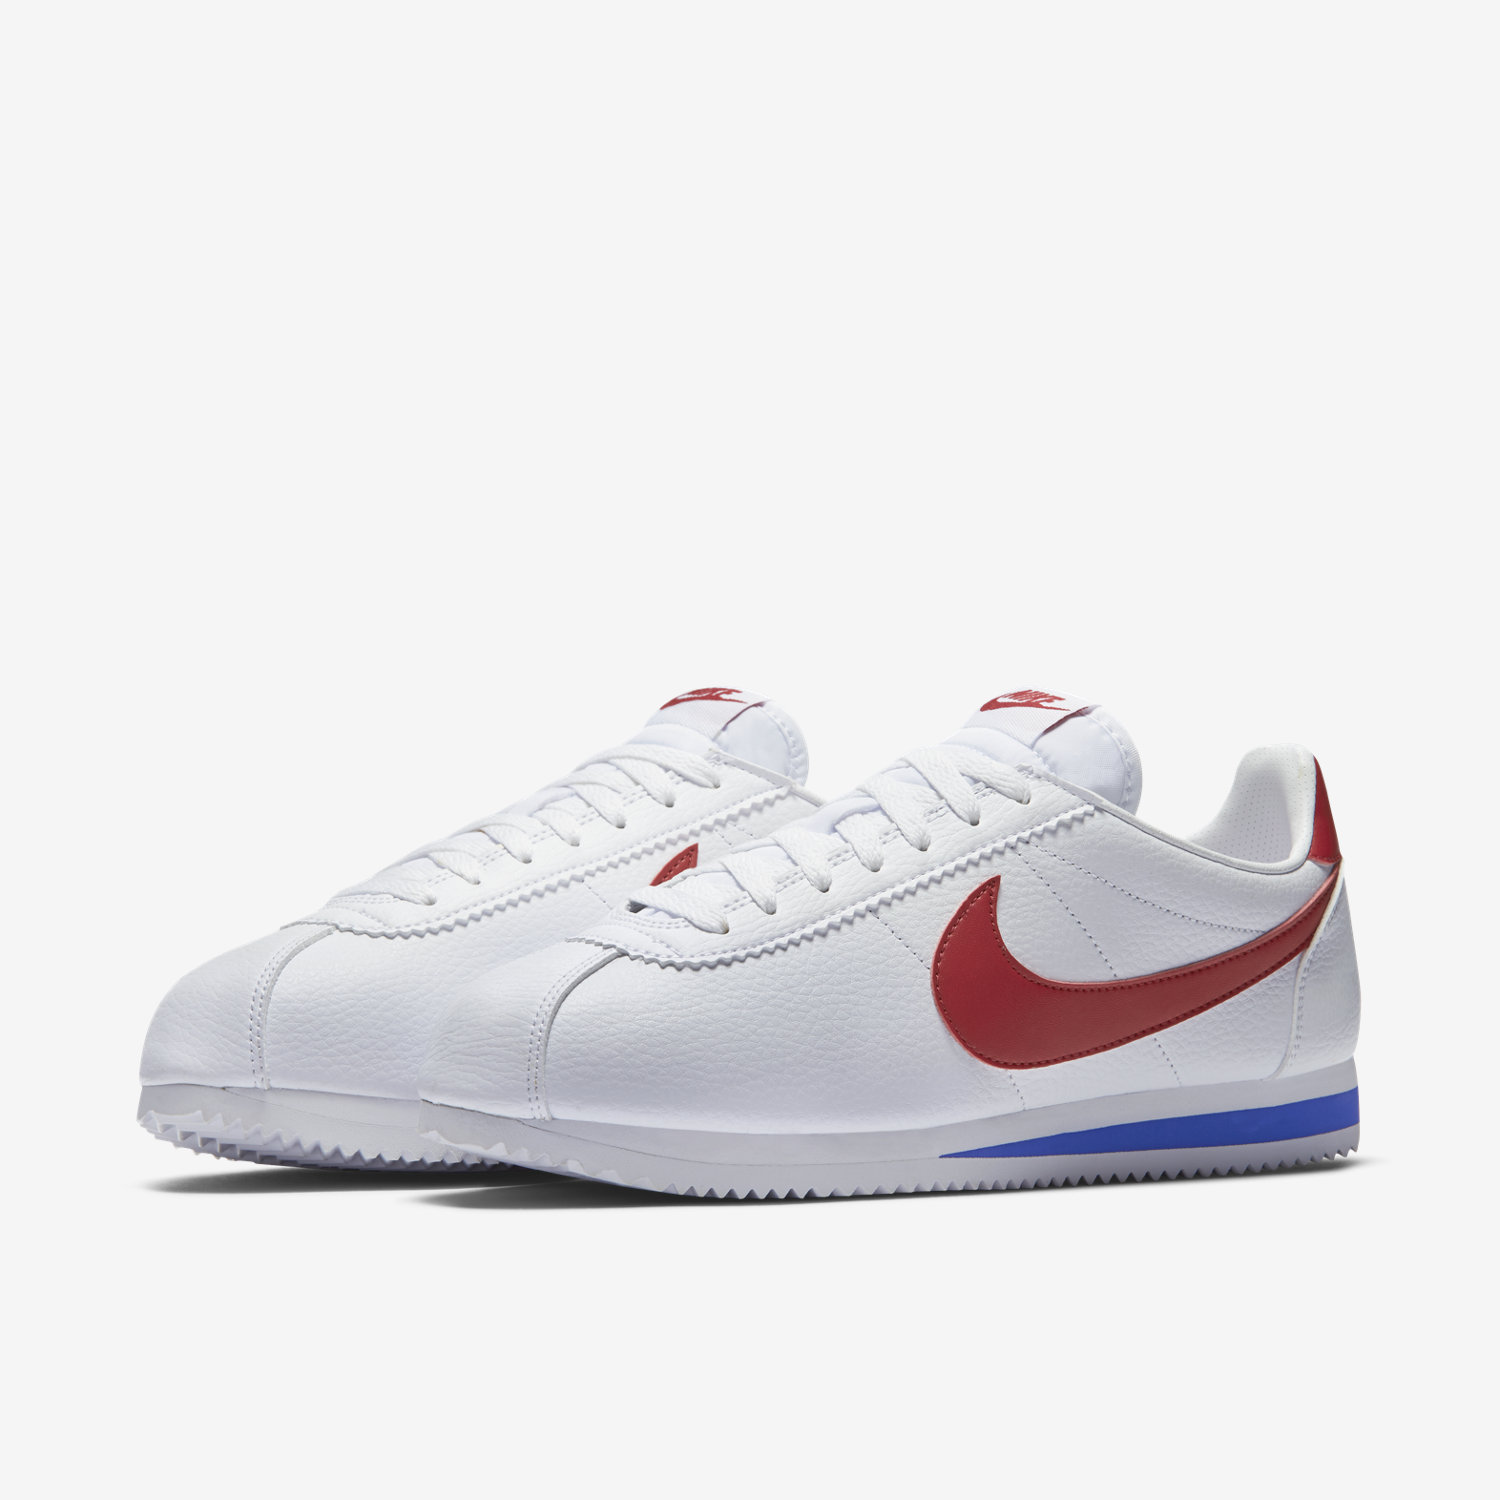 Usa Leather White Basket Leather Nike acheter Cortez 5jq43RAL